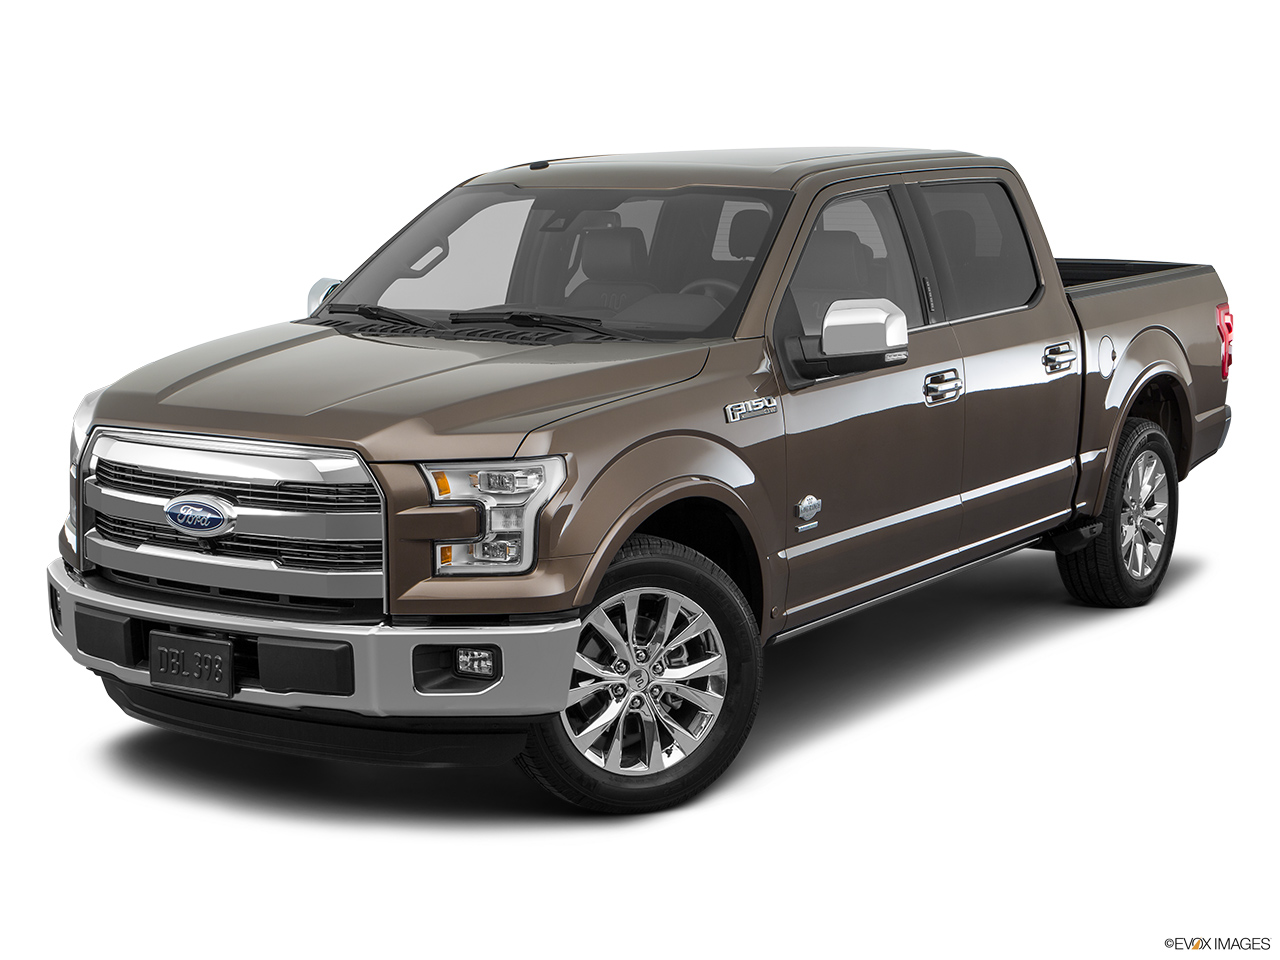 ford f 150 2017 3 5l ecoboost crew cab king ranch fx4 luxury pack in bahrain new car prices. Black Bedroom Furniture Sets. Home Design Ideas